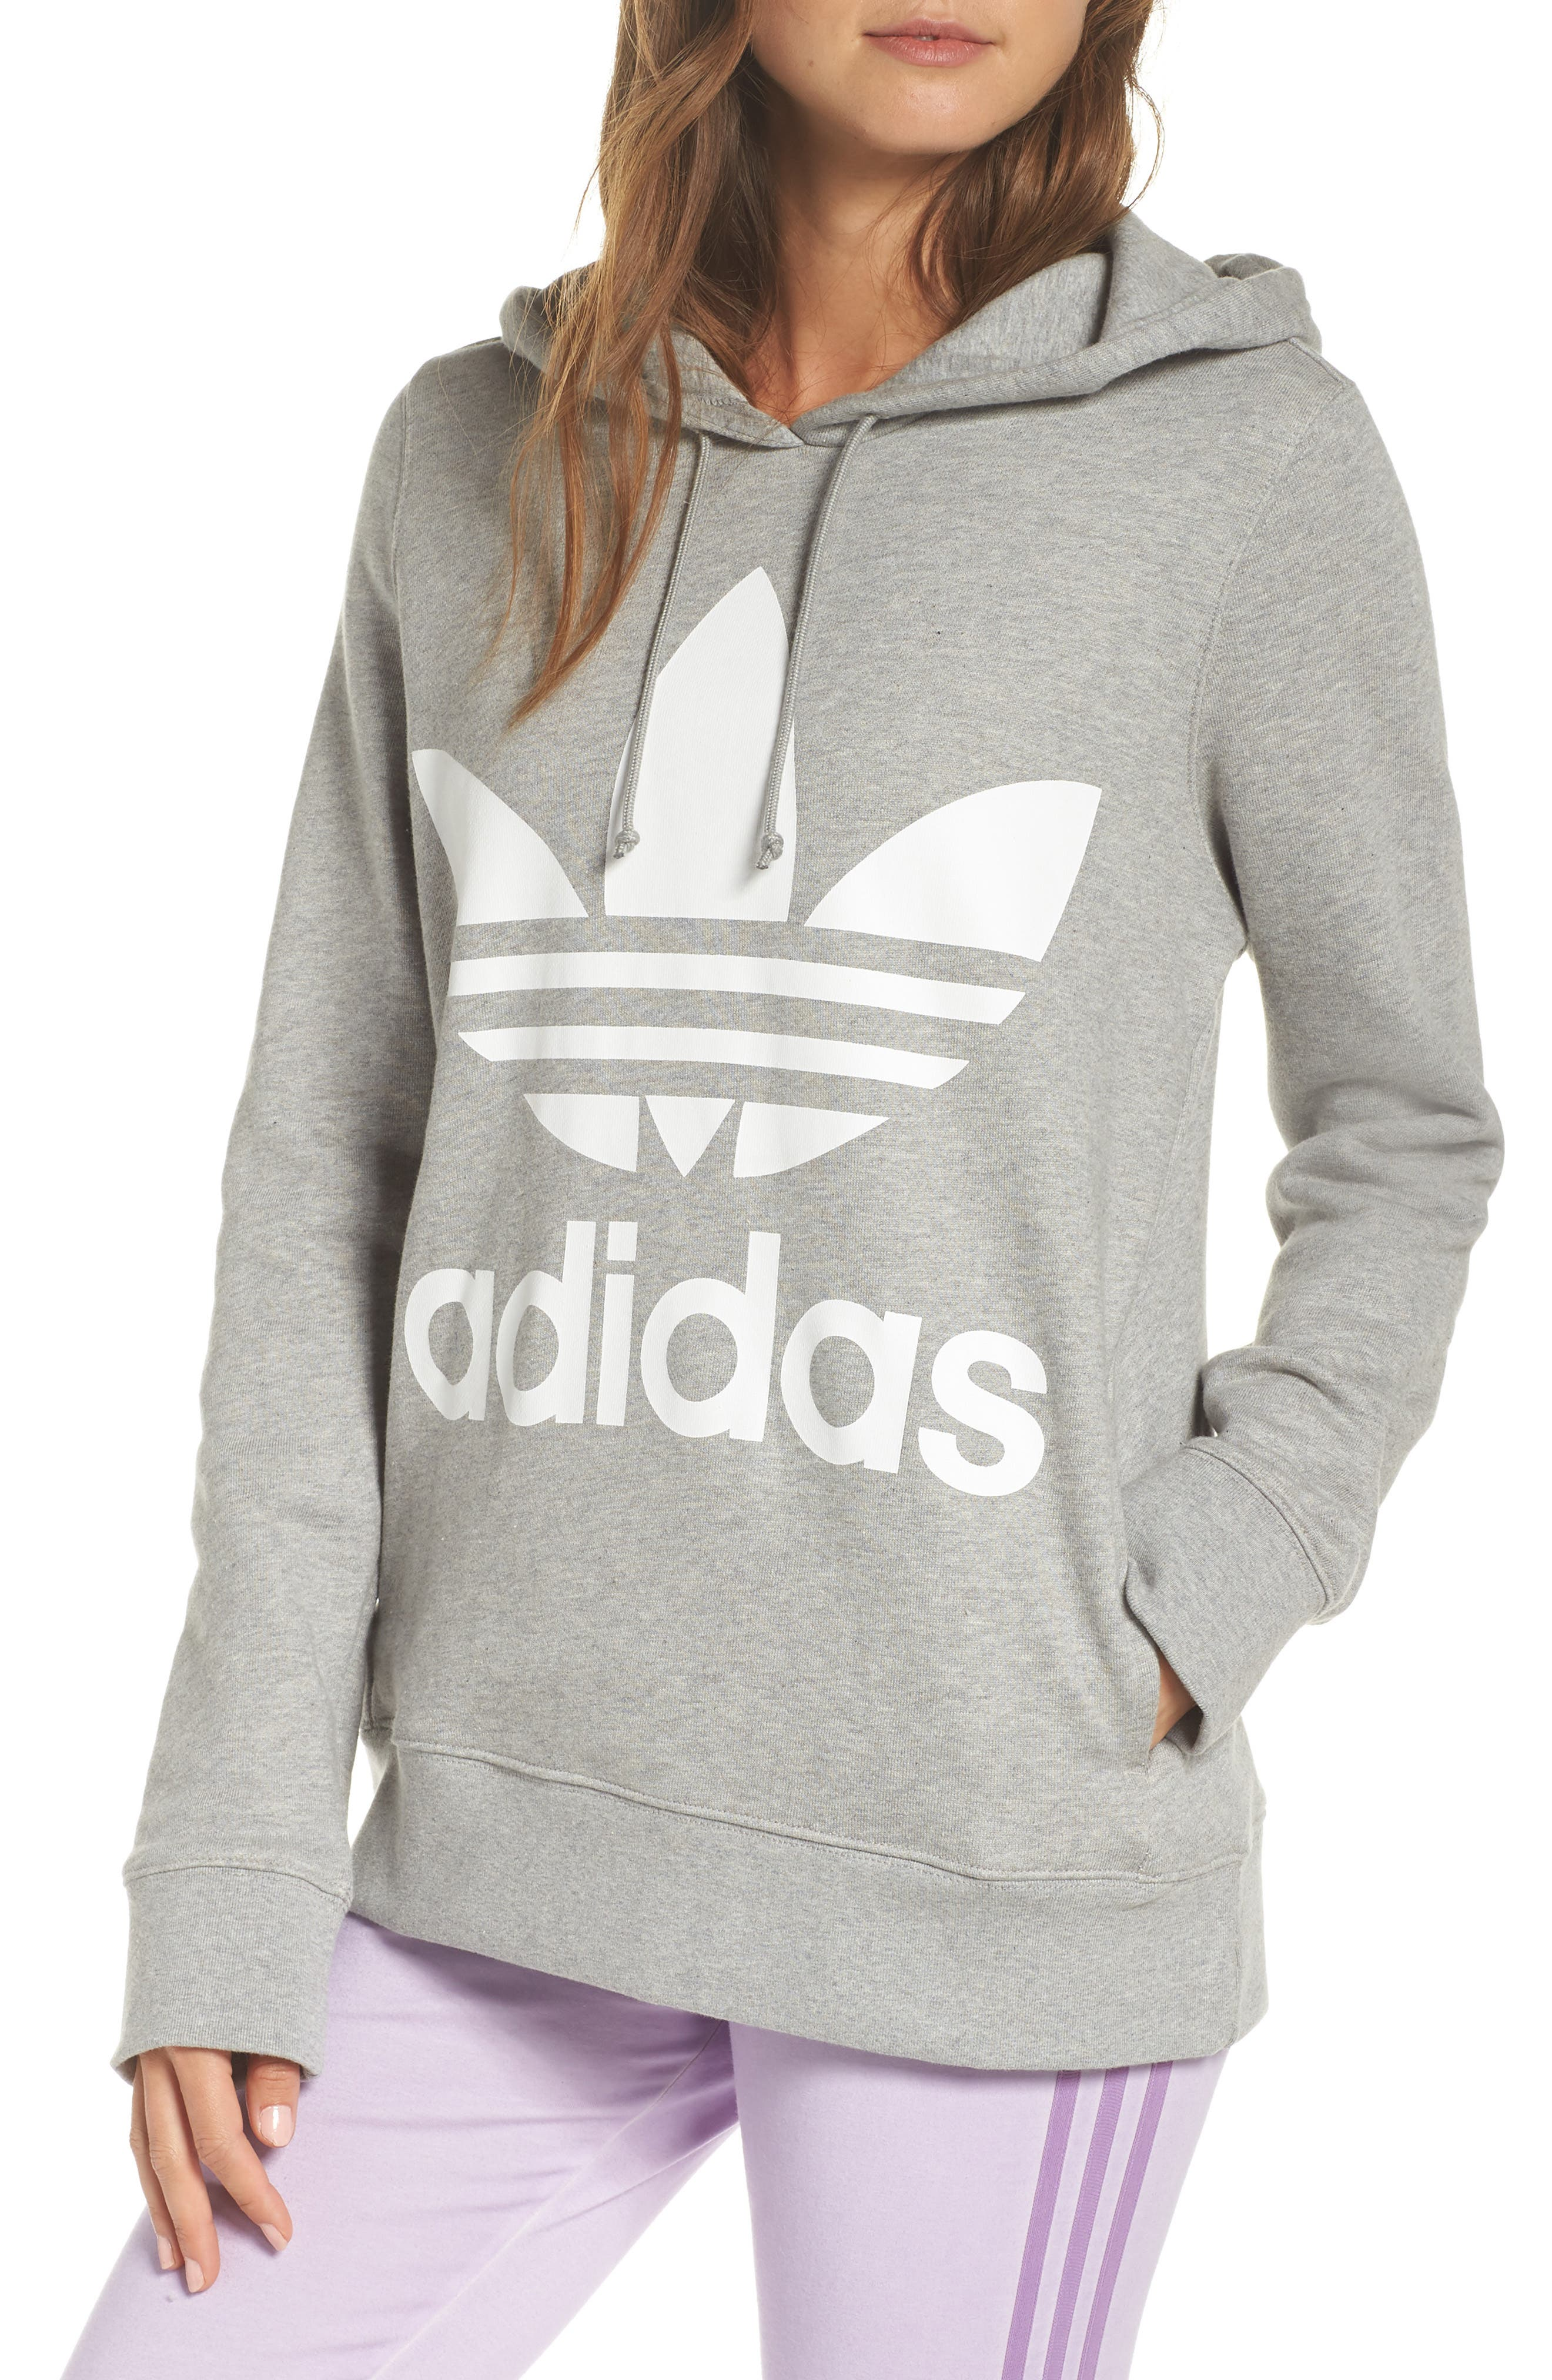 ADIDAS ORIGINALS, Trefoil Hoodie, Main thumbnail 1, color, MEDIUM GREY HEATHER